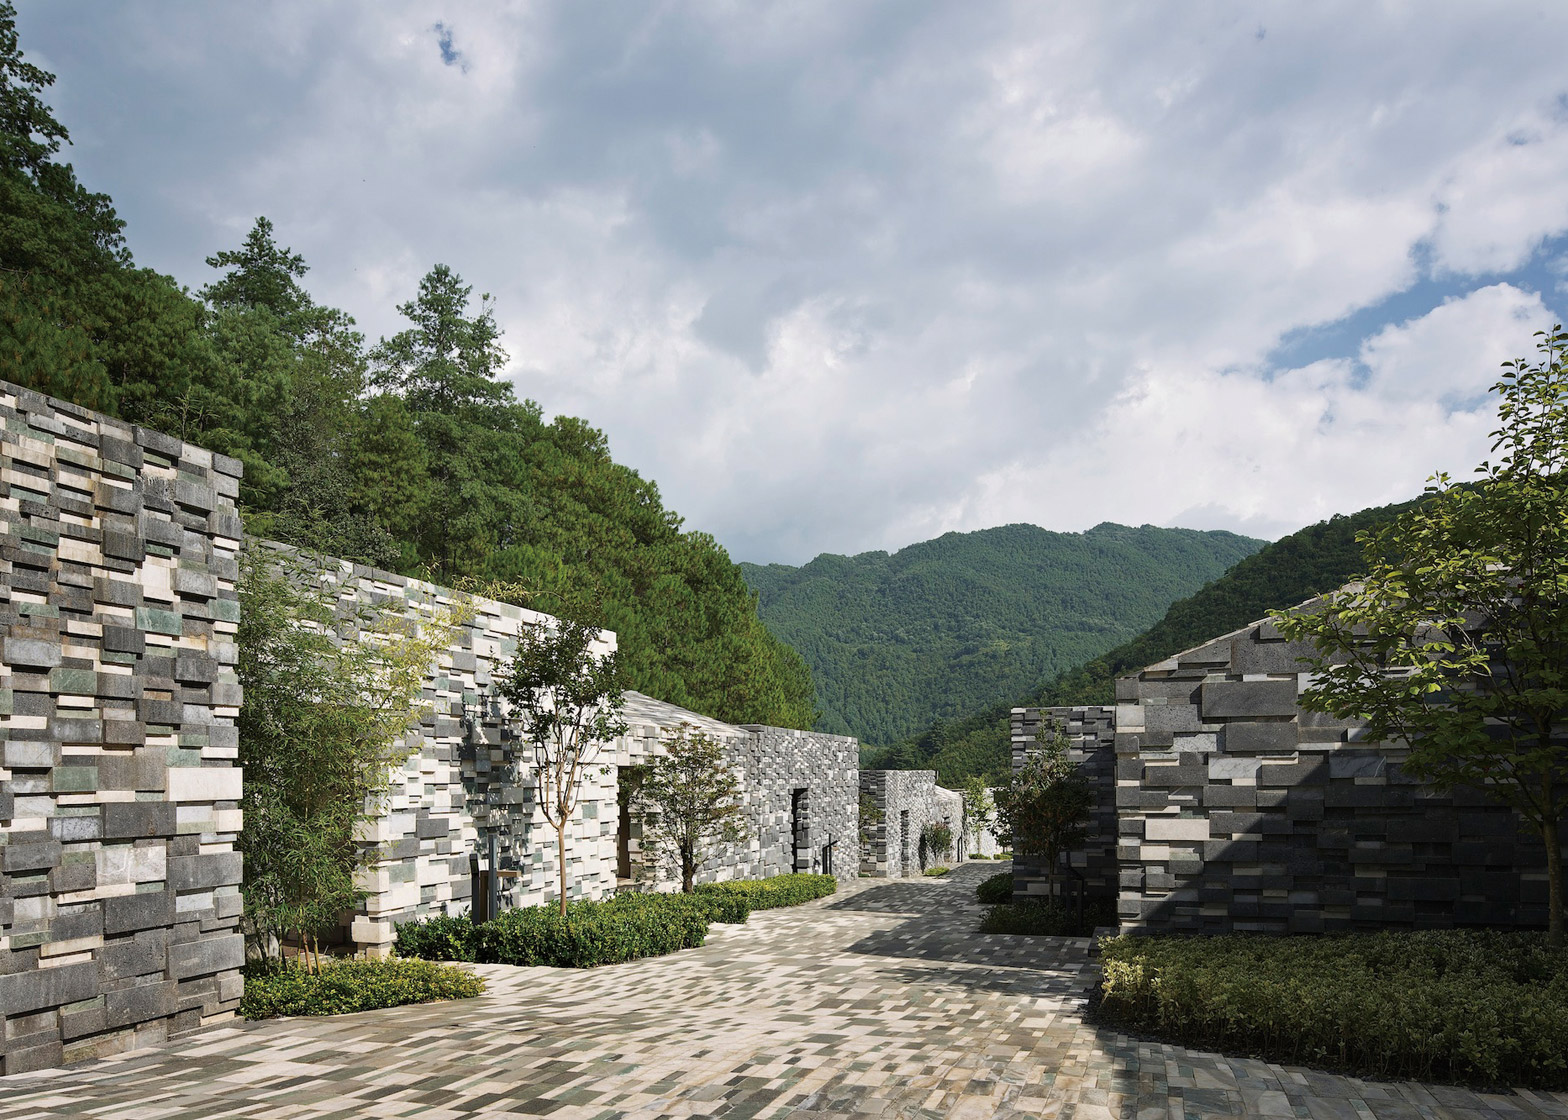 Yunfeng Spa Resort by Kengo Kuma Architects in Yunnan Province China